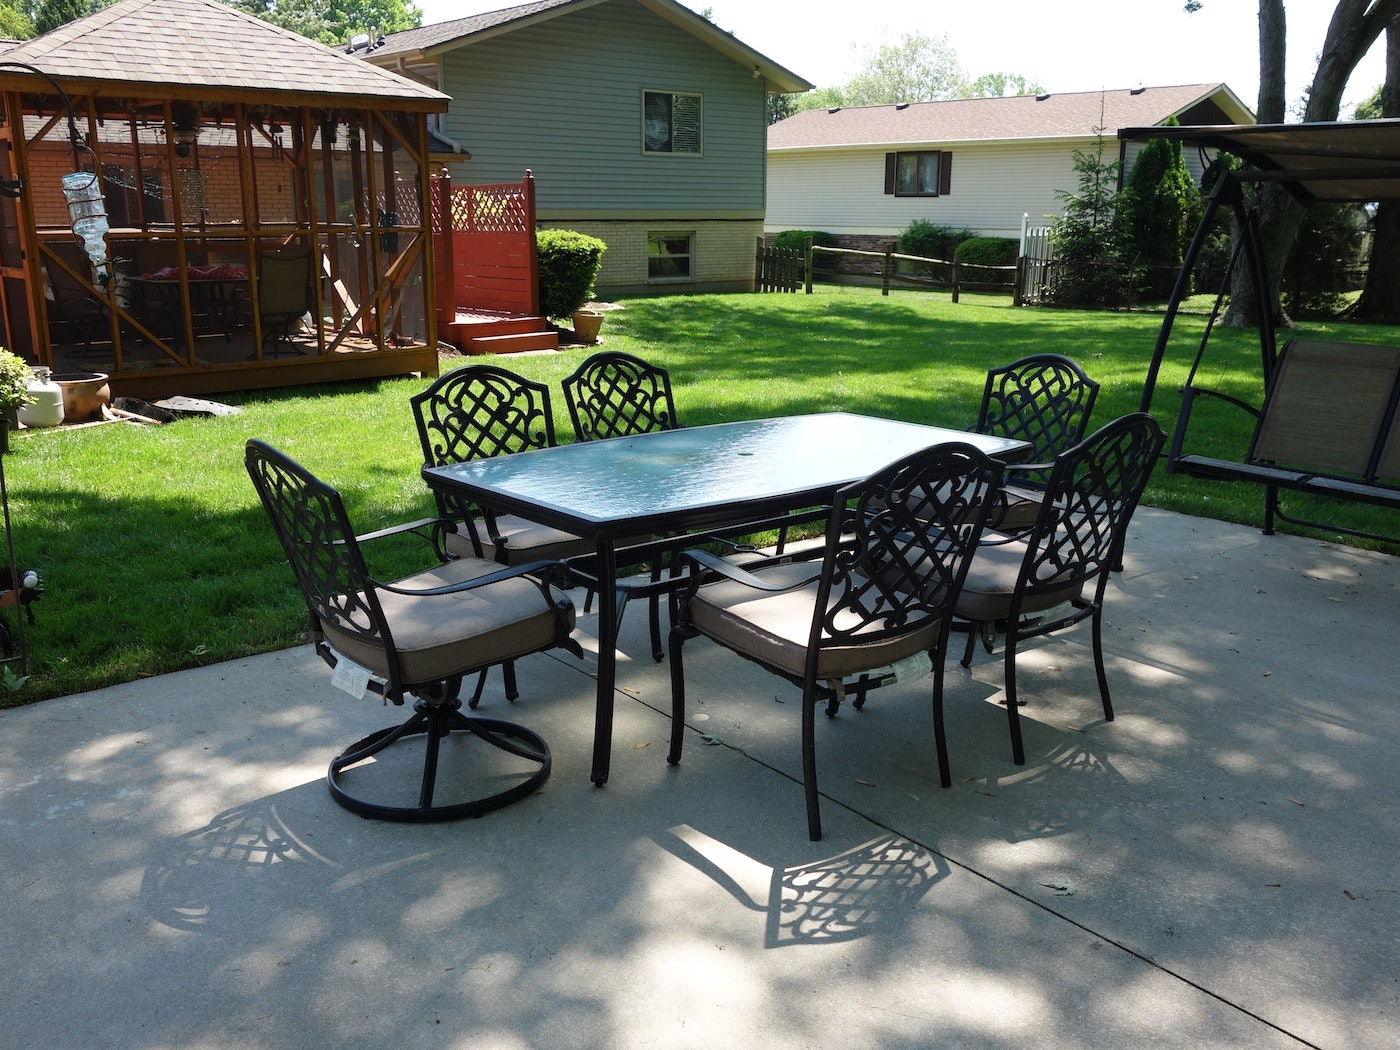 Martha Stewart Living Patio Glass Top Table & Six Chairs ... on Martha Stewart 6 Piece Patio Set id=47930